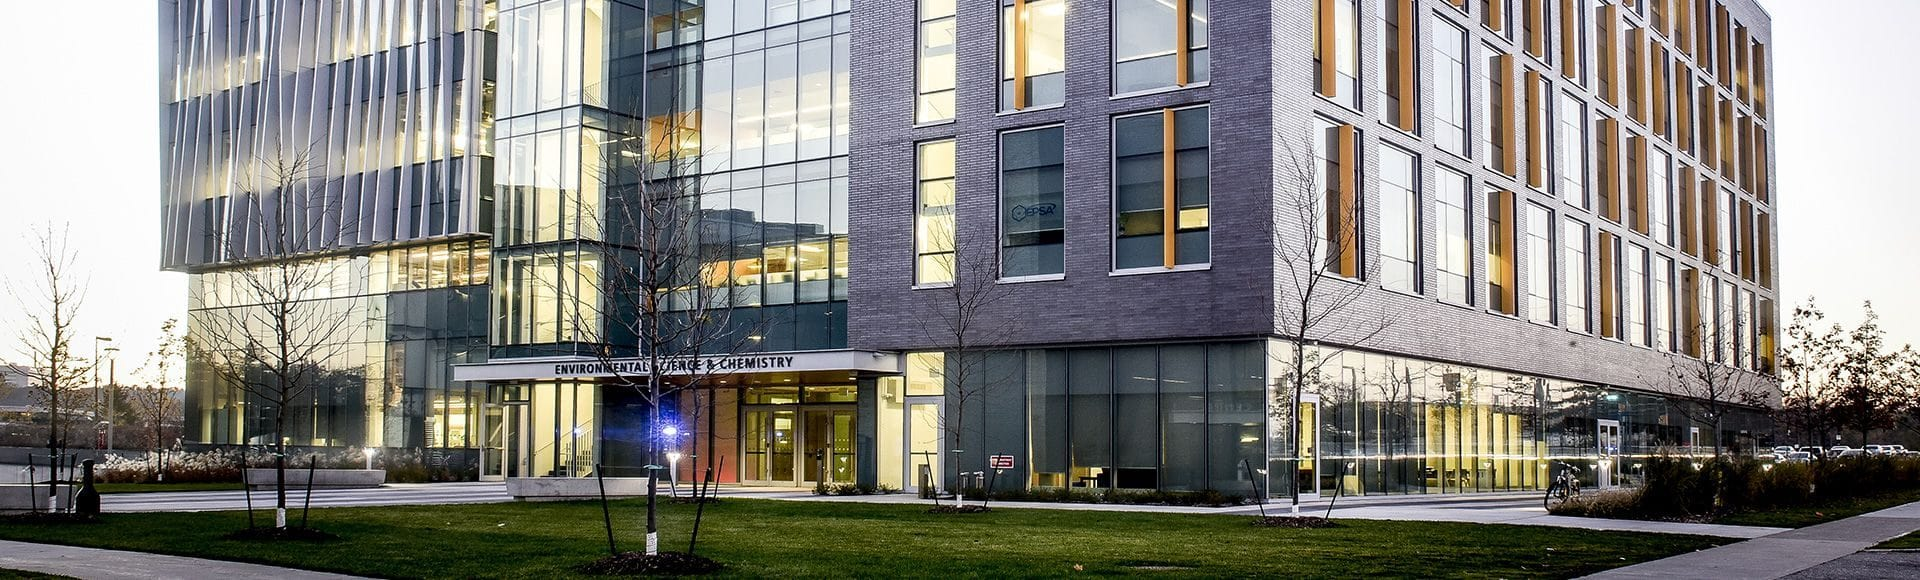 Environmental Science and Chemistry Building at University of Toronto Scarborough